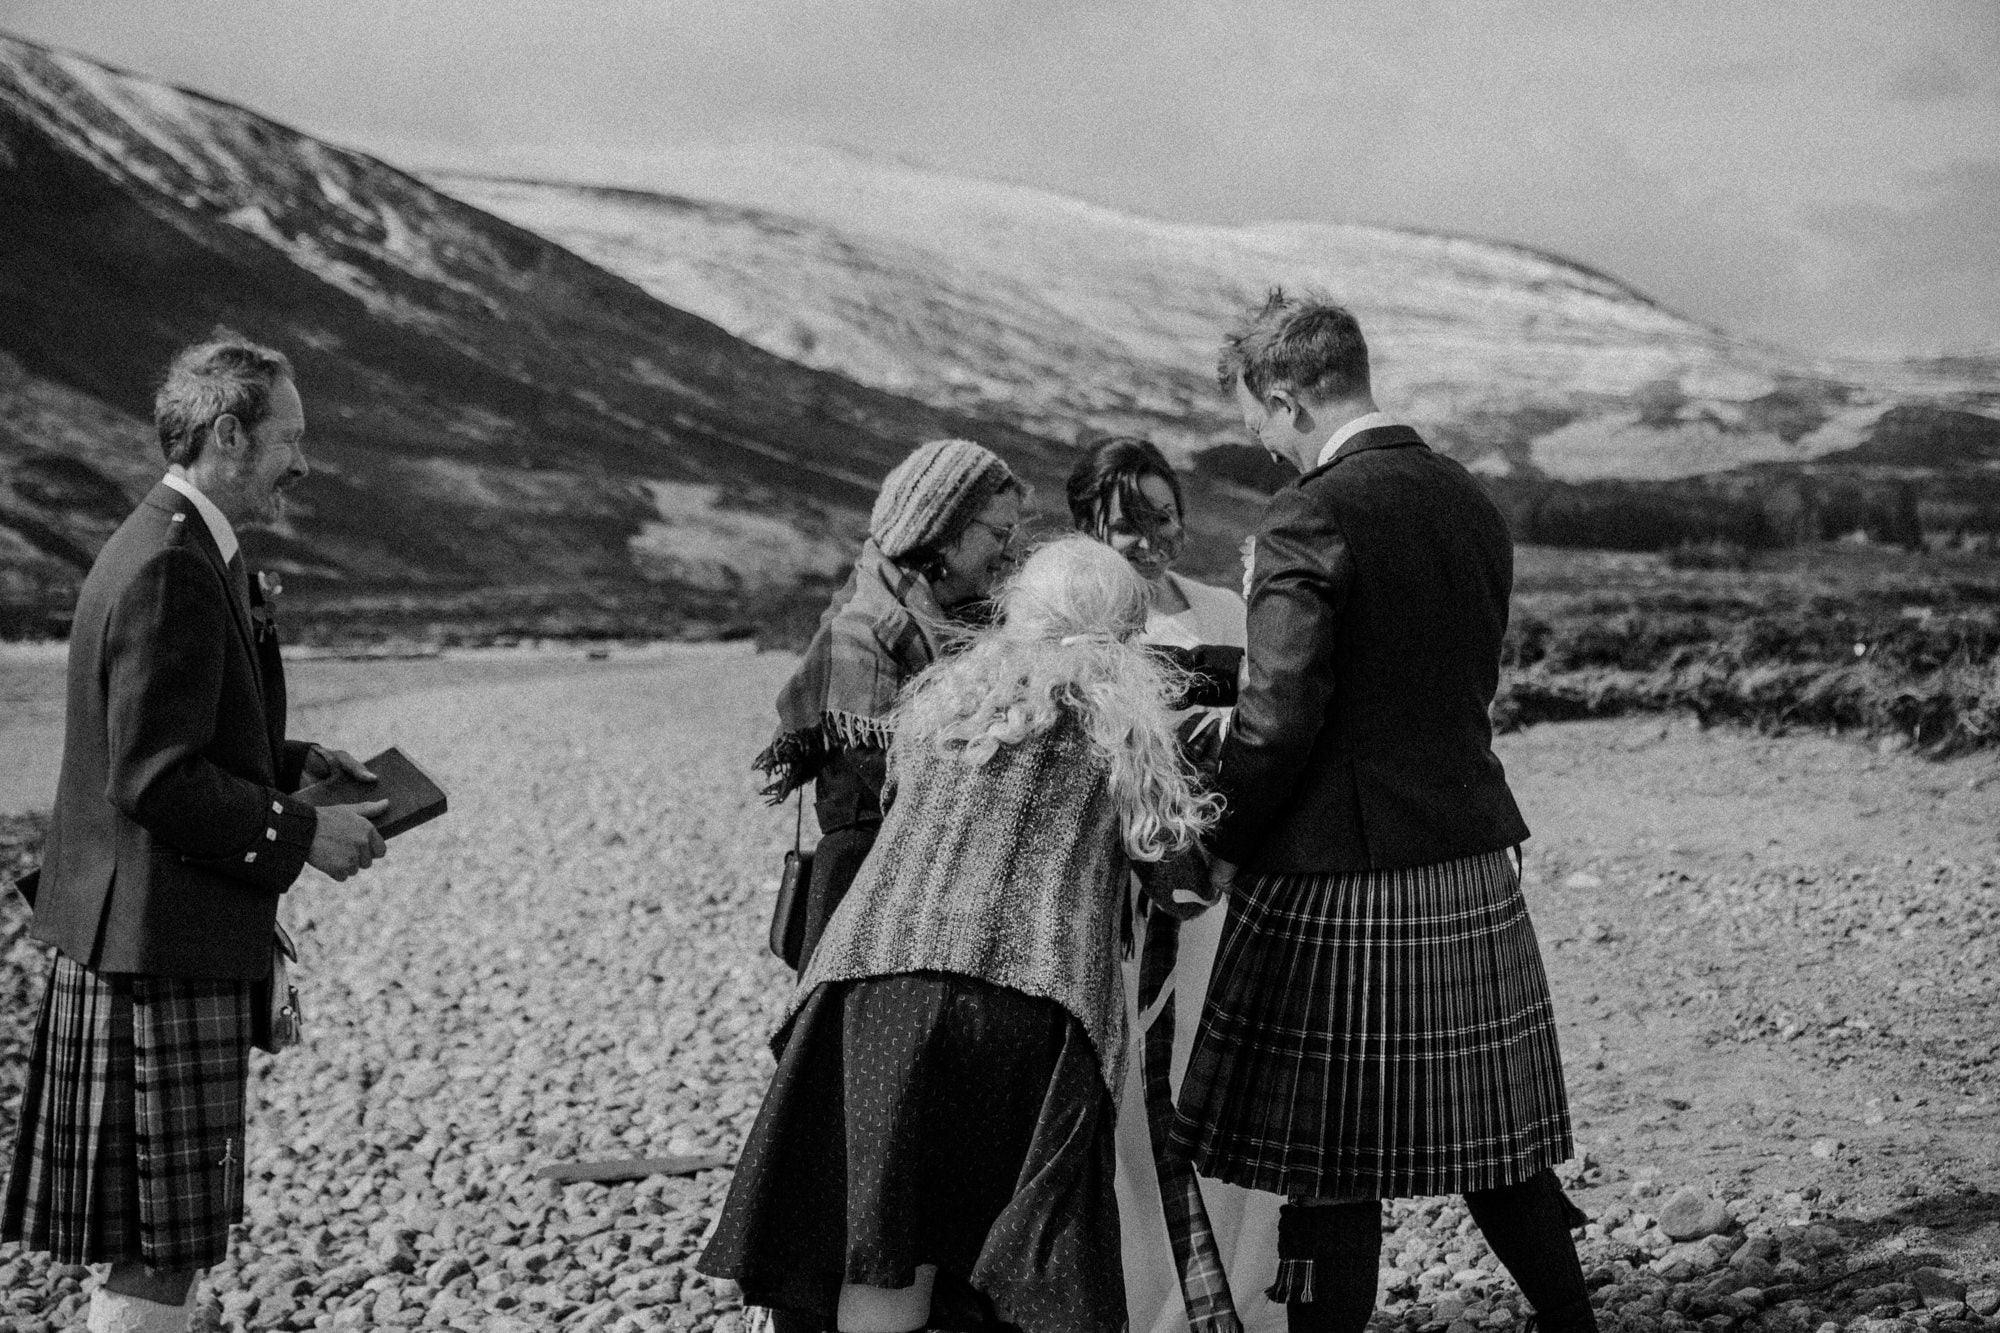 Adventurous Scottish elopement wedding at Loch Muick in the Cairngorms National Park